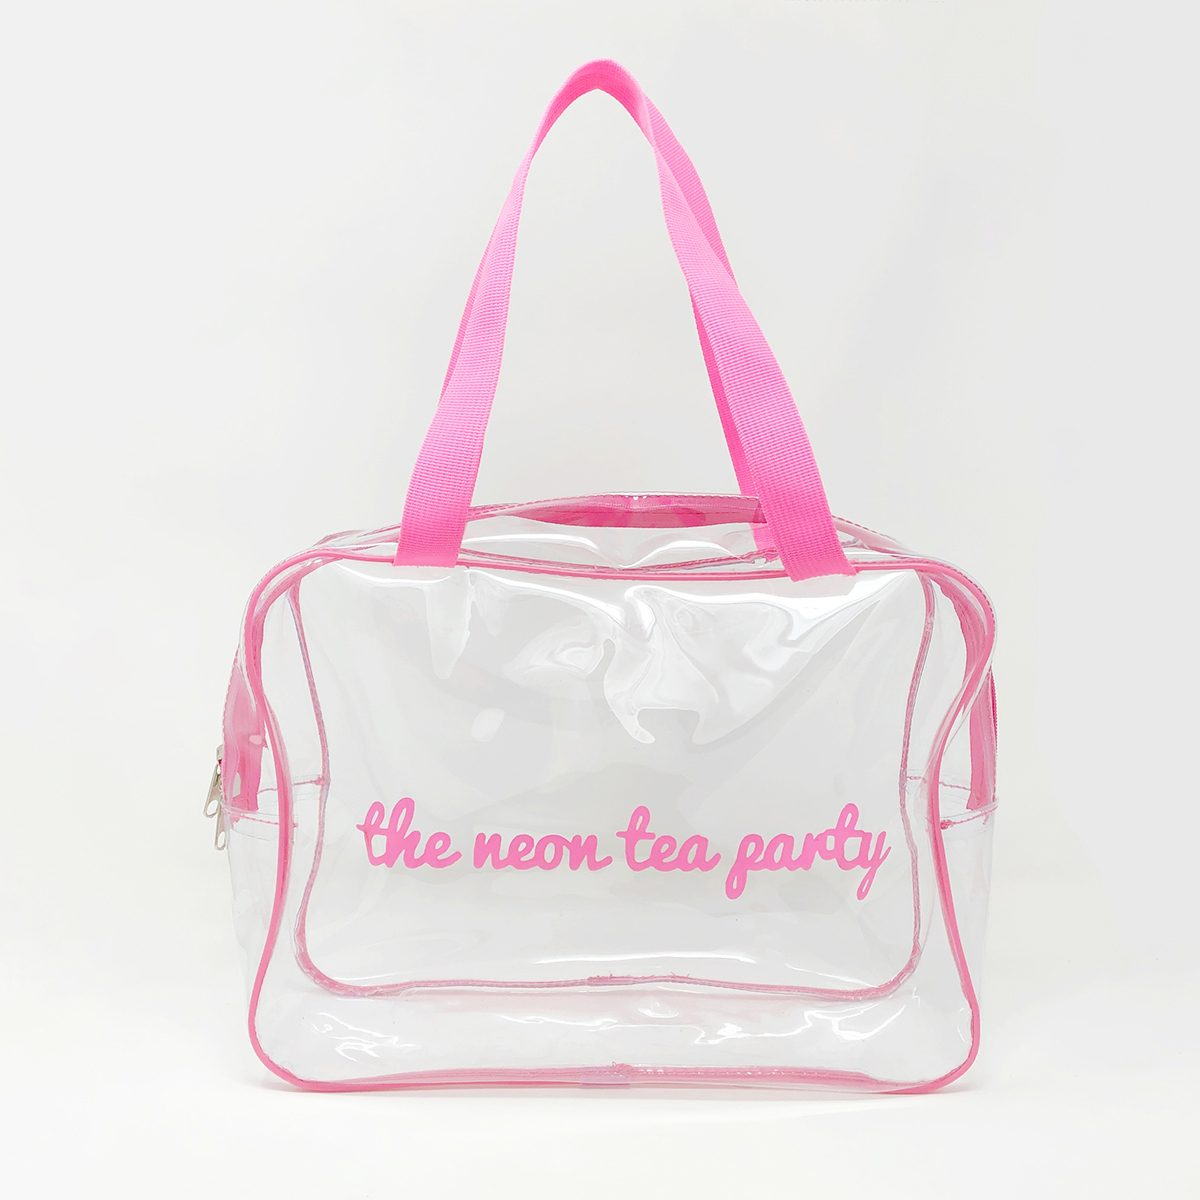 The Neon Tea Party - Large Vinyl Craft Bag